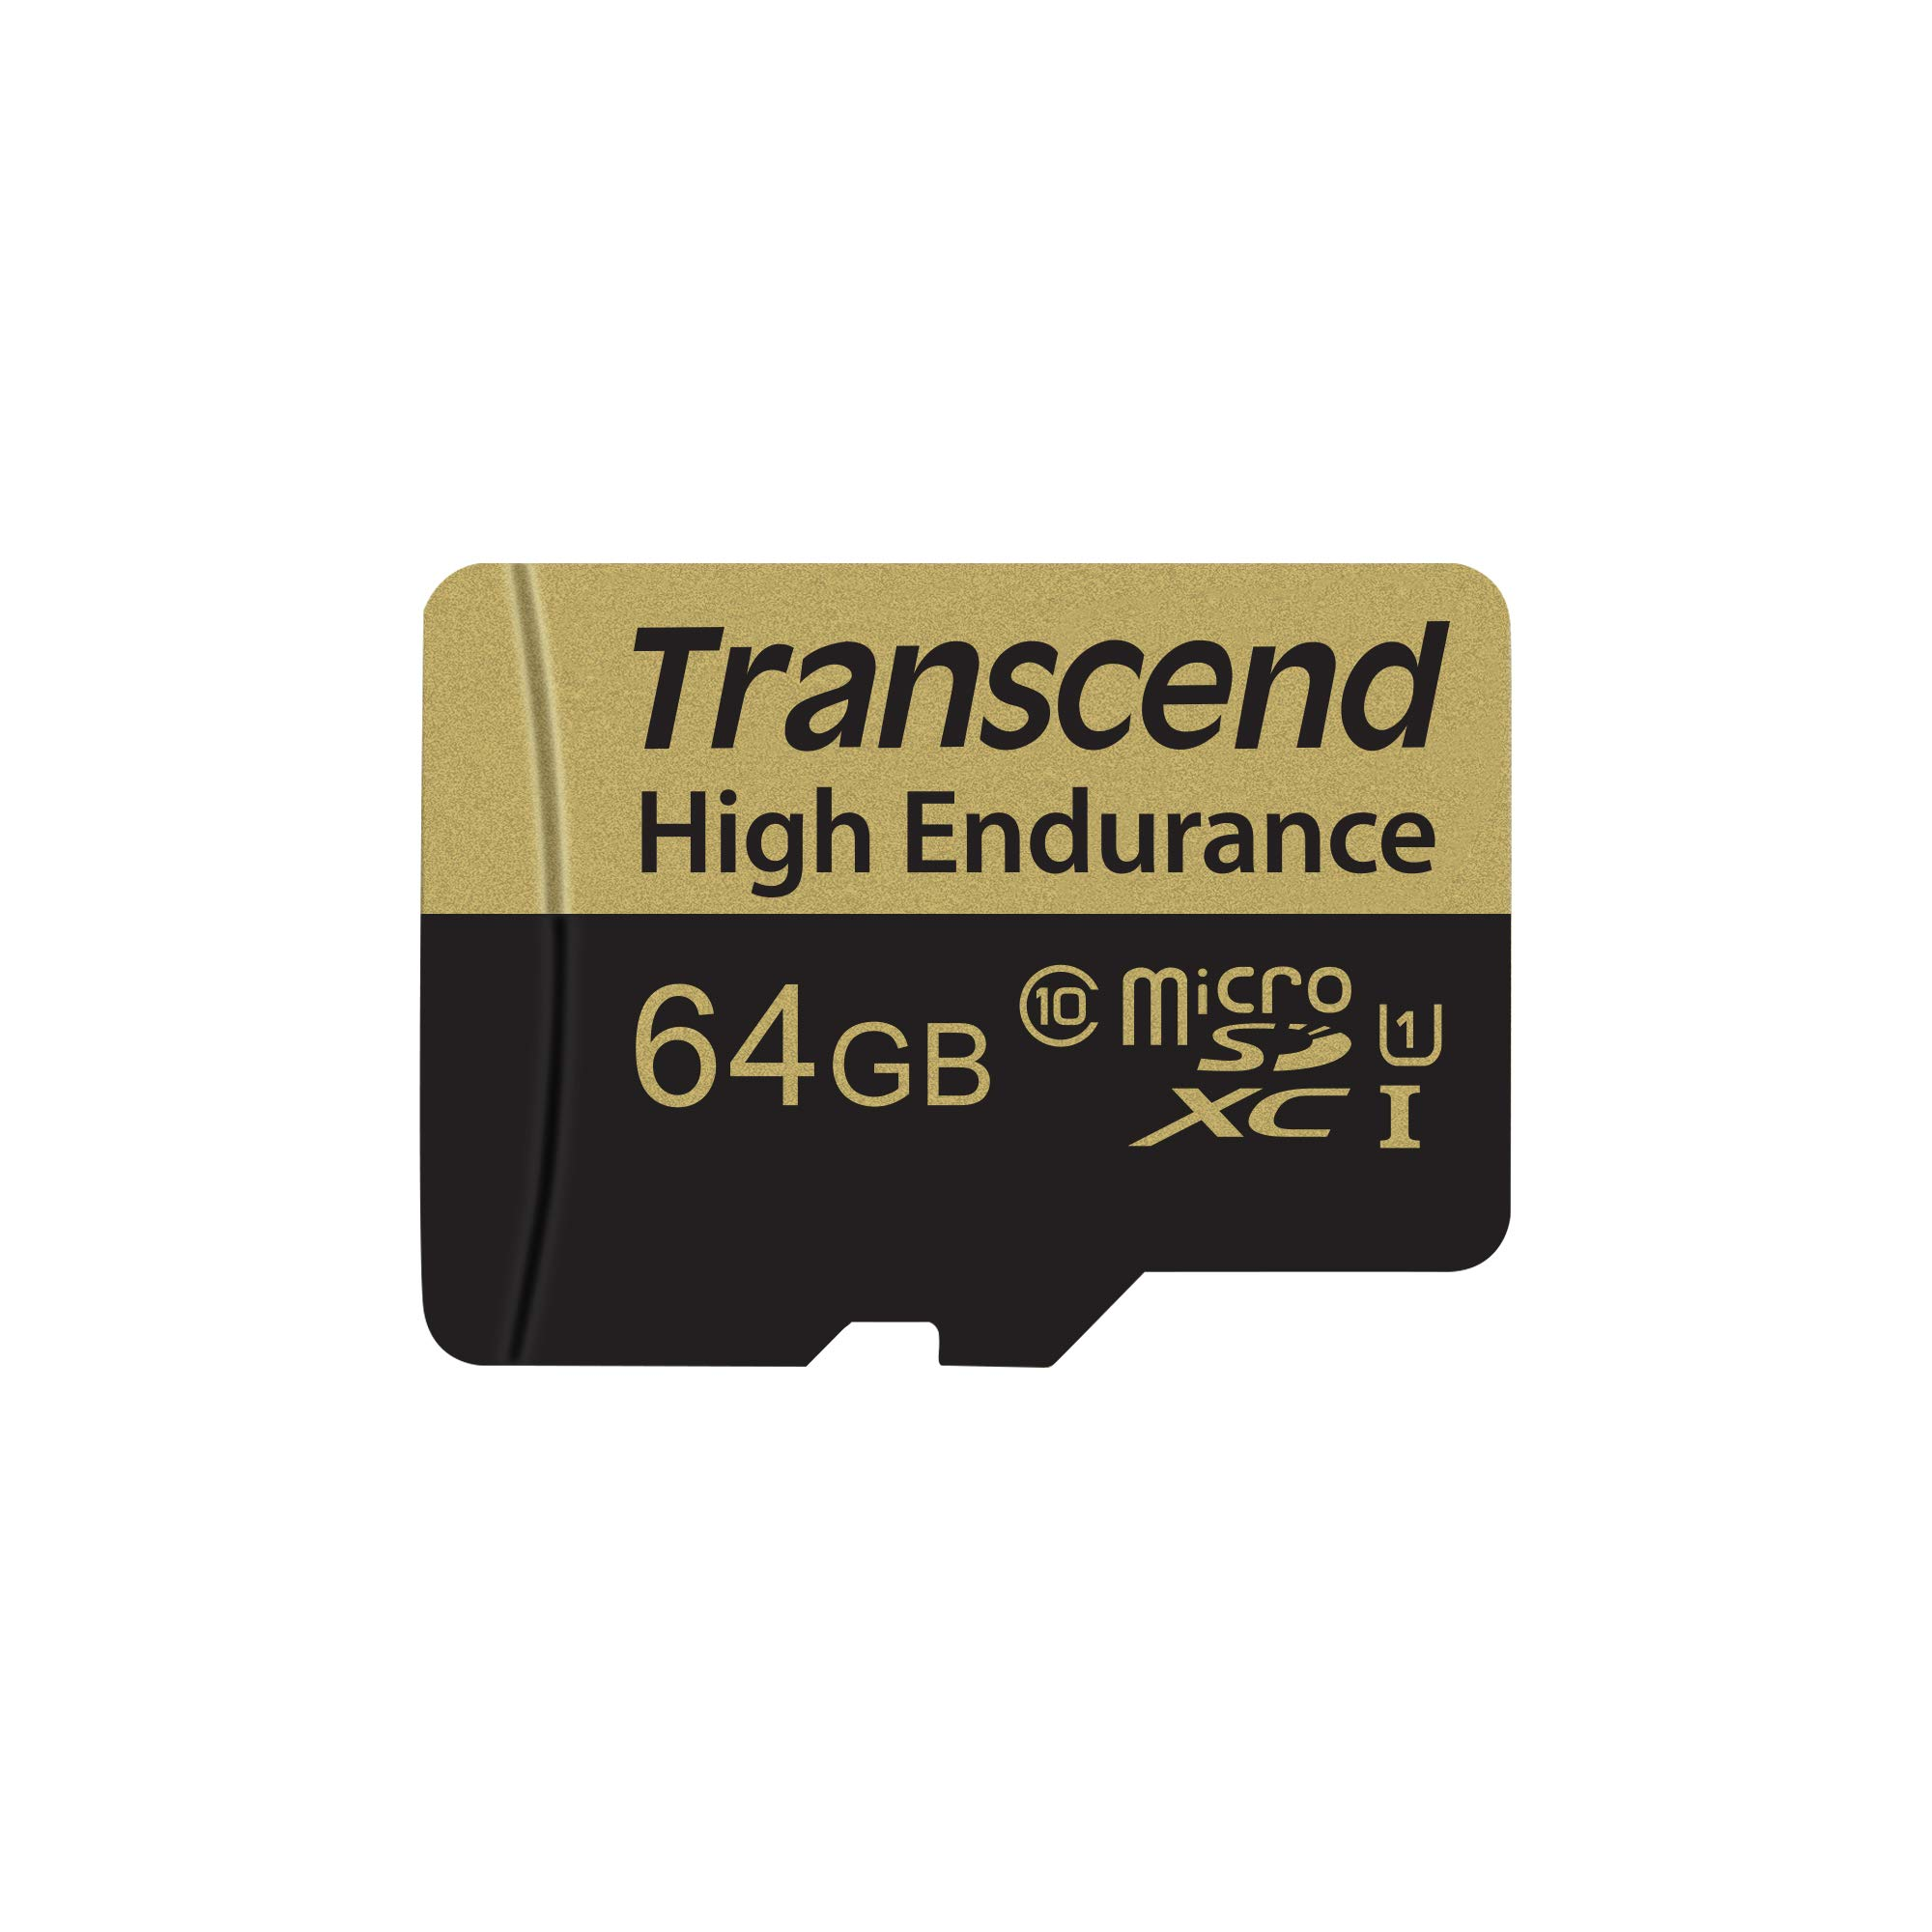 Transcend Information 64GB Micro Card with Adapter (TS64GUSDXC10V) by Transcend